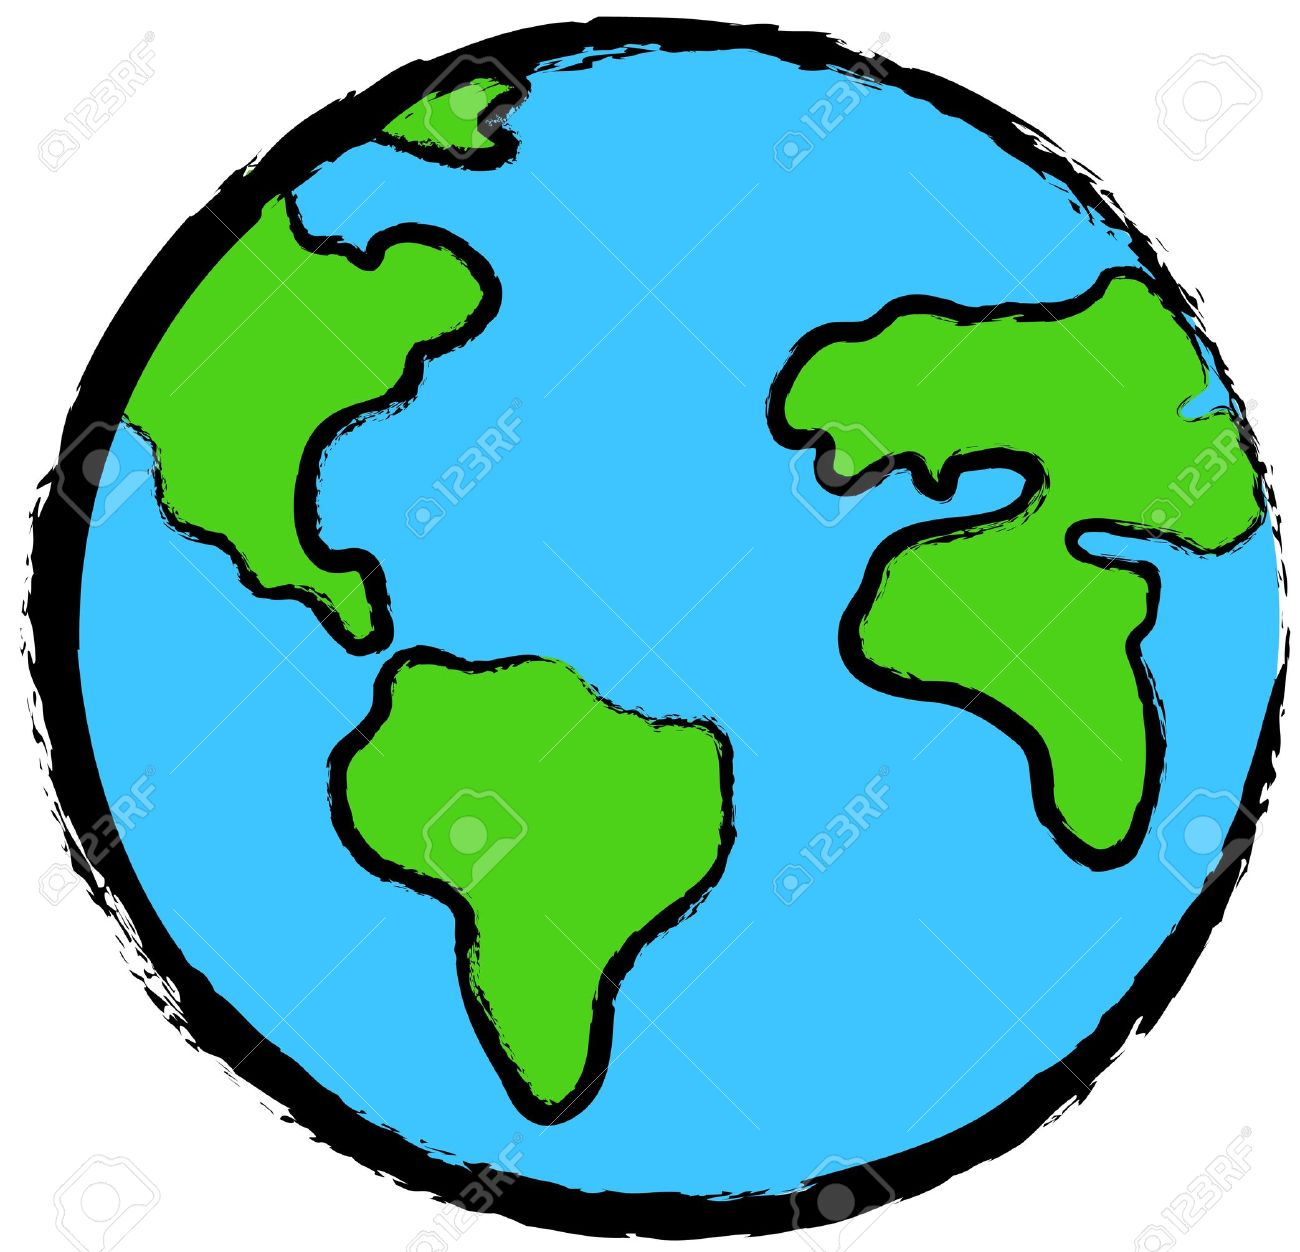 Planet earth clipart 1 » Clipart Station.